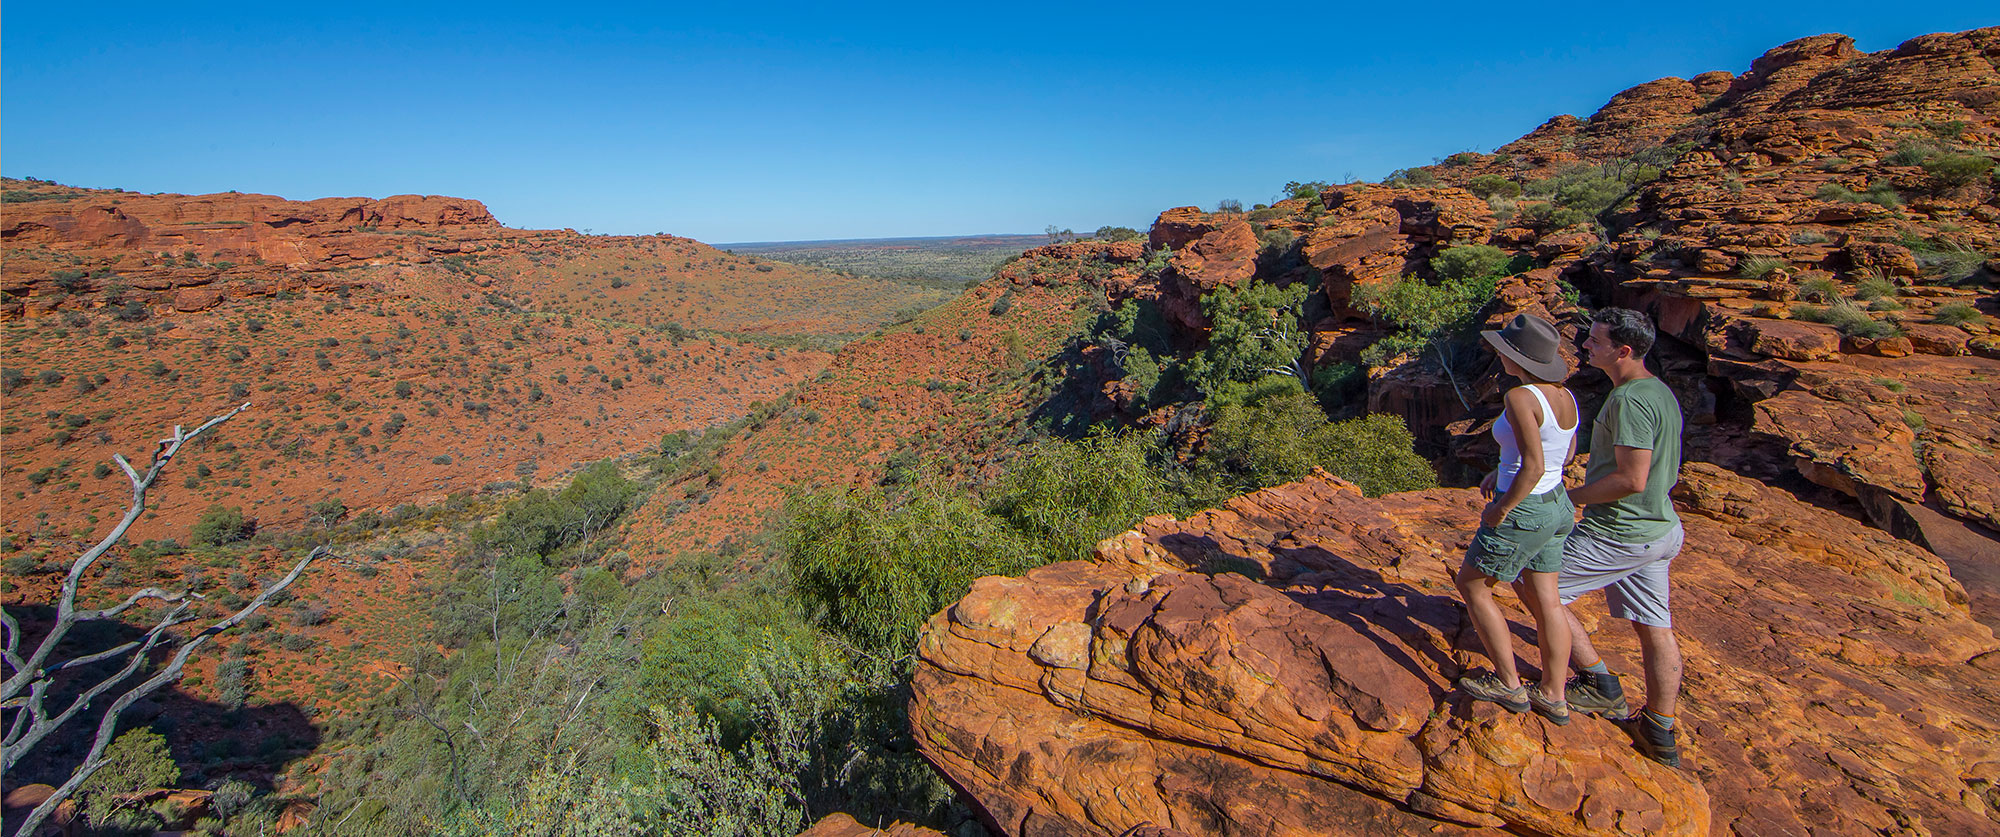 Australian Adventure Vacation - Kings Canyon Rim Walk